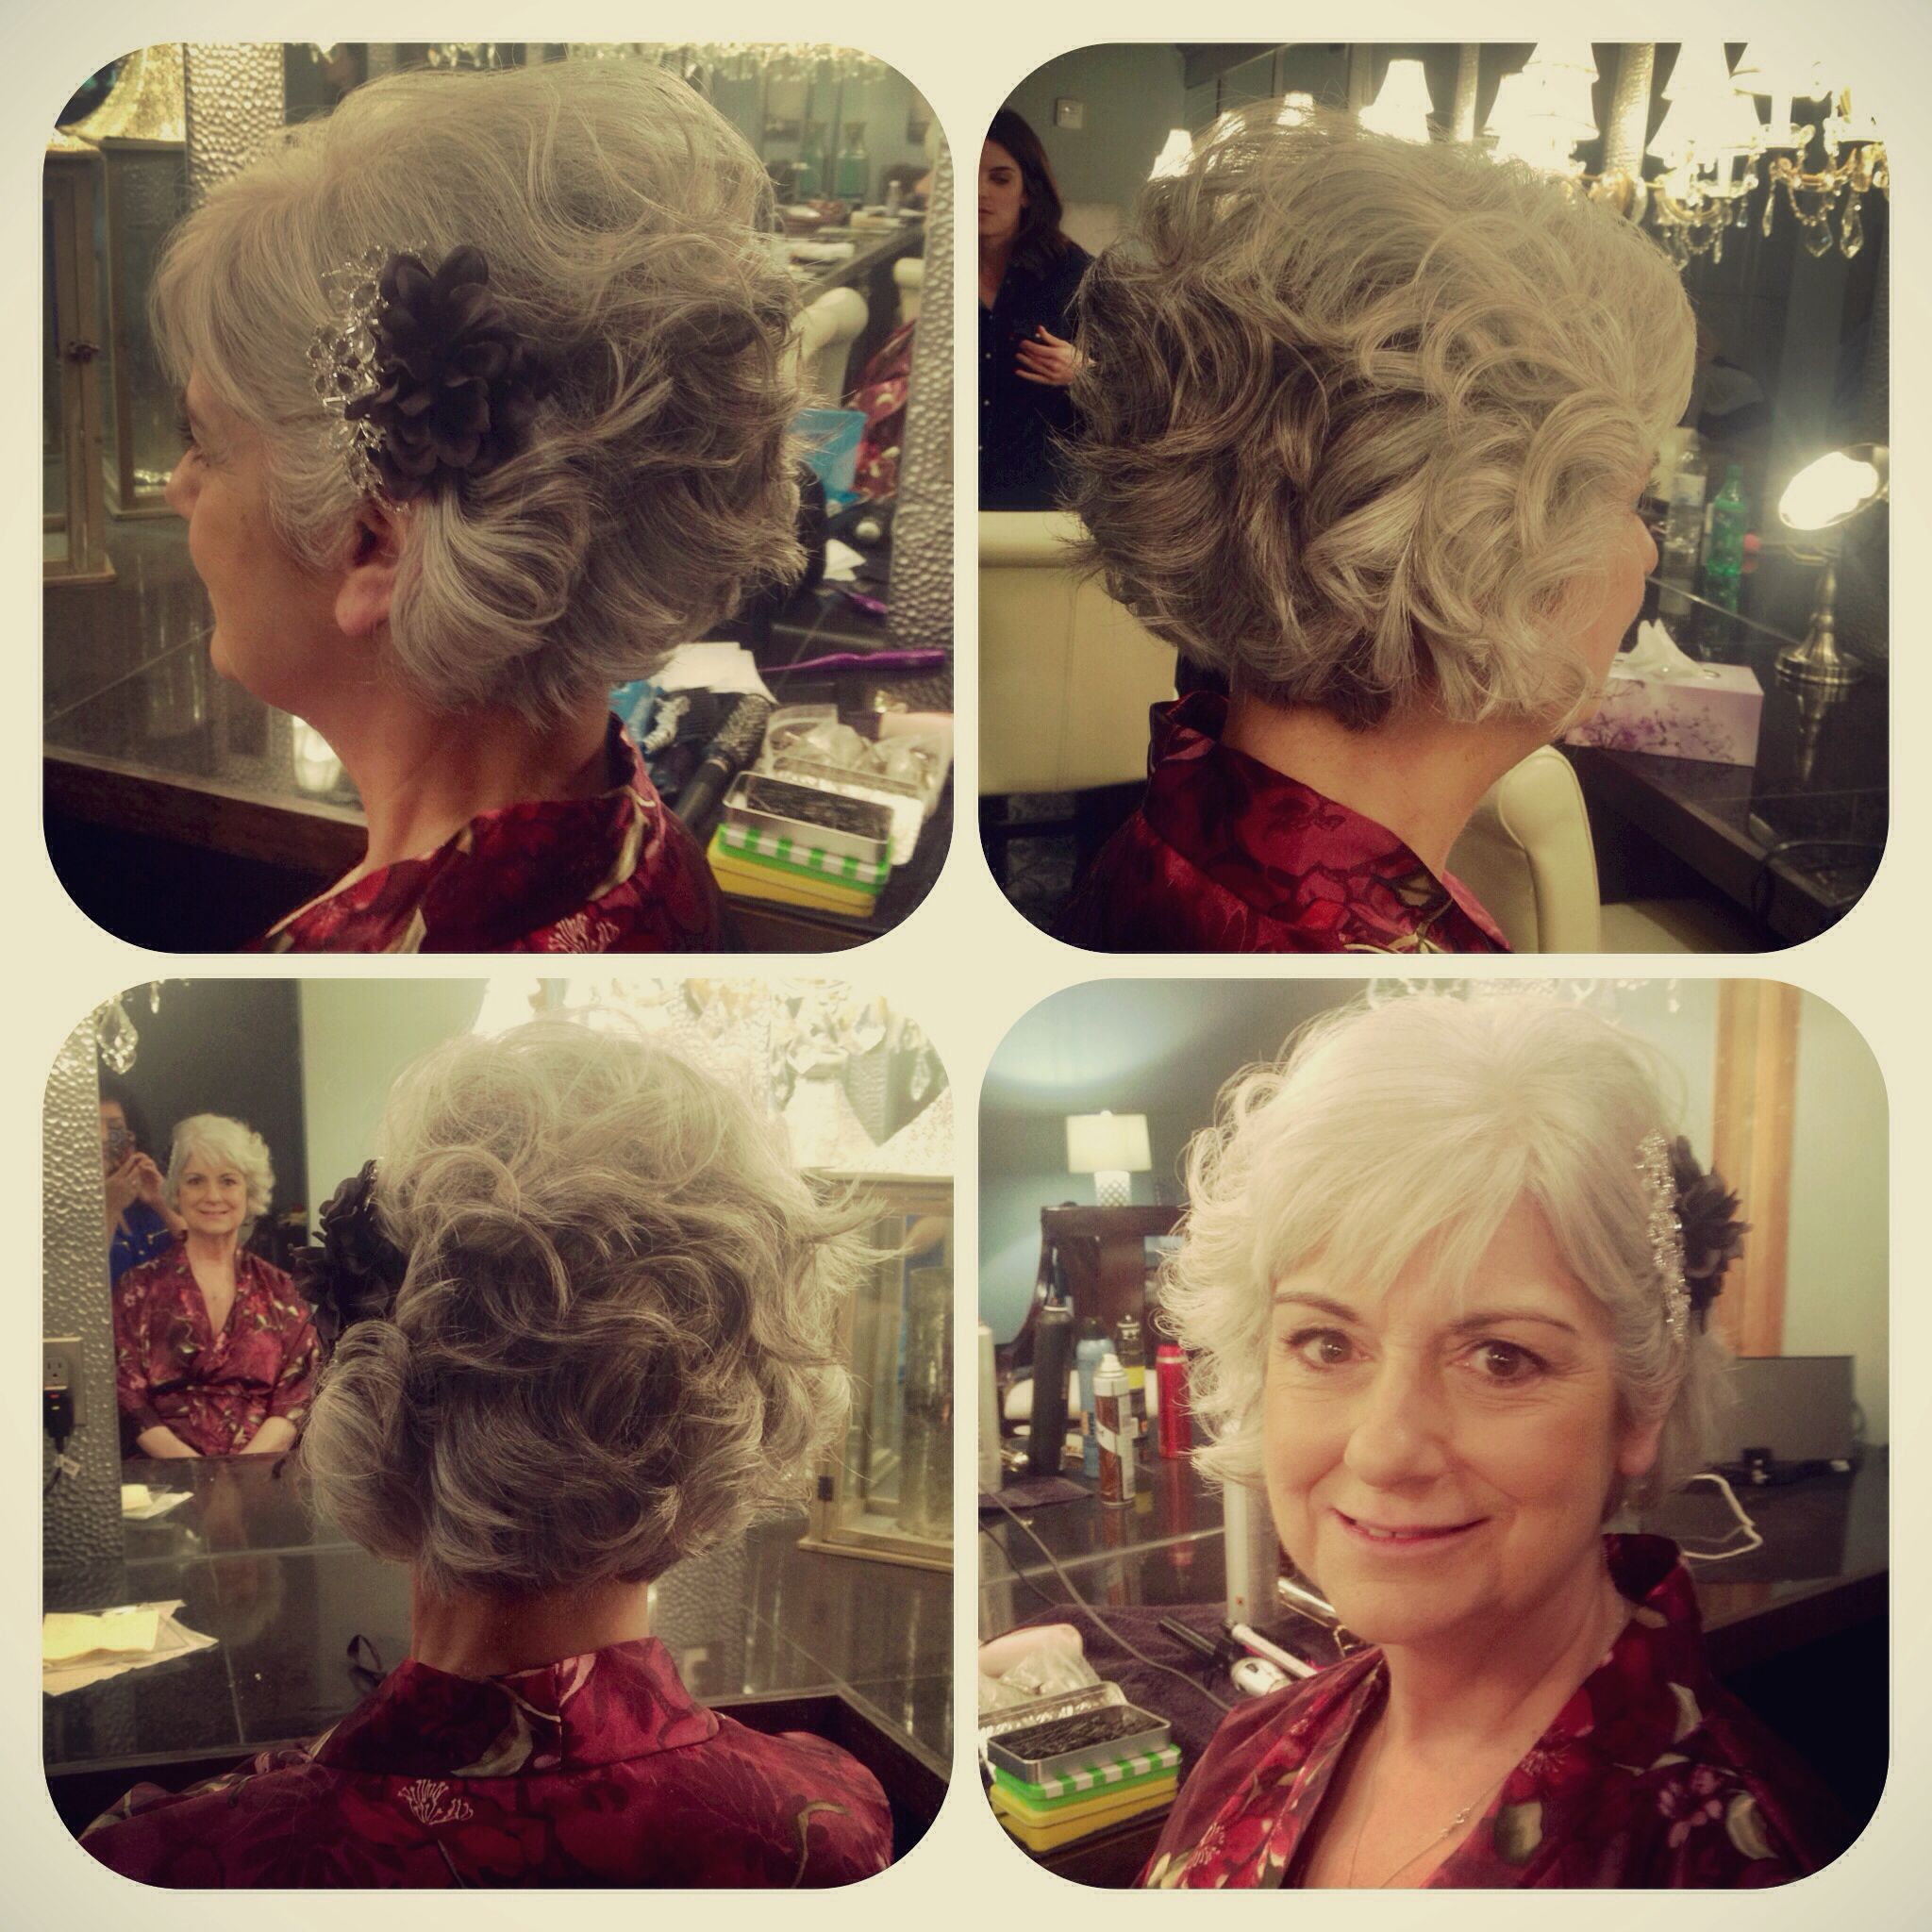 Pin By Wendy Frank On Wedding Hair Makeup Mother Of The Bride Hair Mother Of The Groom Hairstyles Mother Of The Bride Hair Short